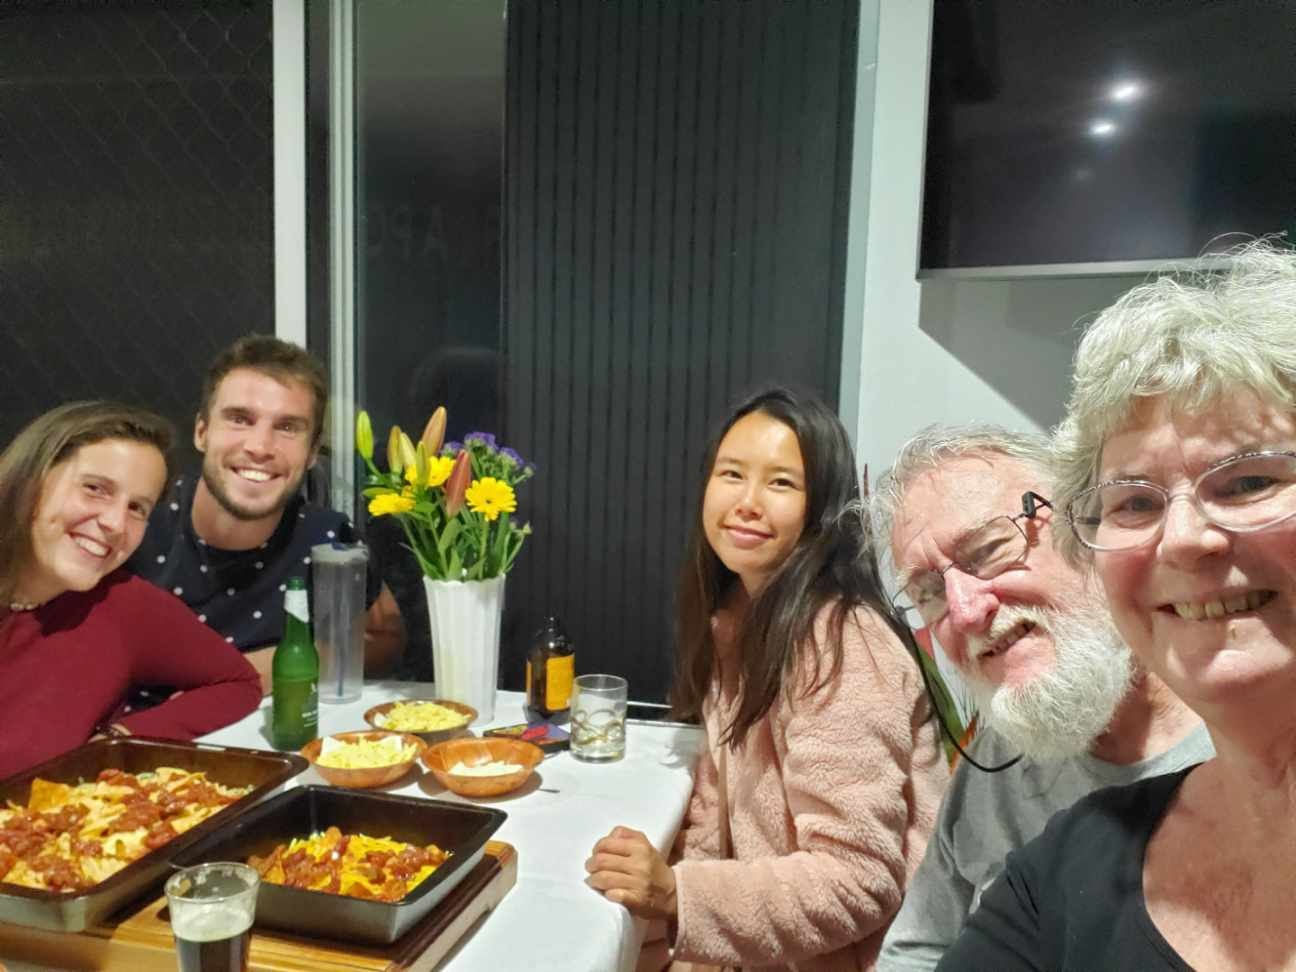 Barbara and David C. (on right) with Thomas P. and Lauranne D. (Belgium), and Sieun Y. (Korea)